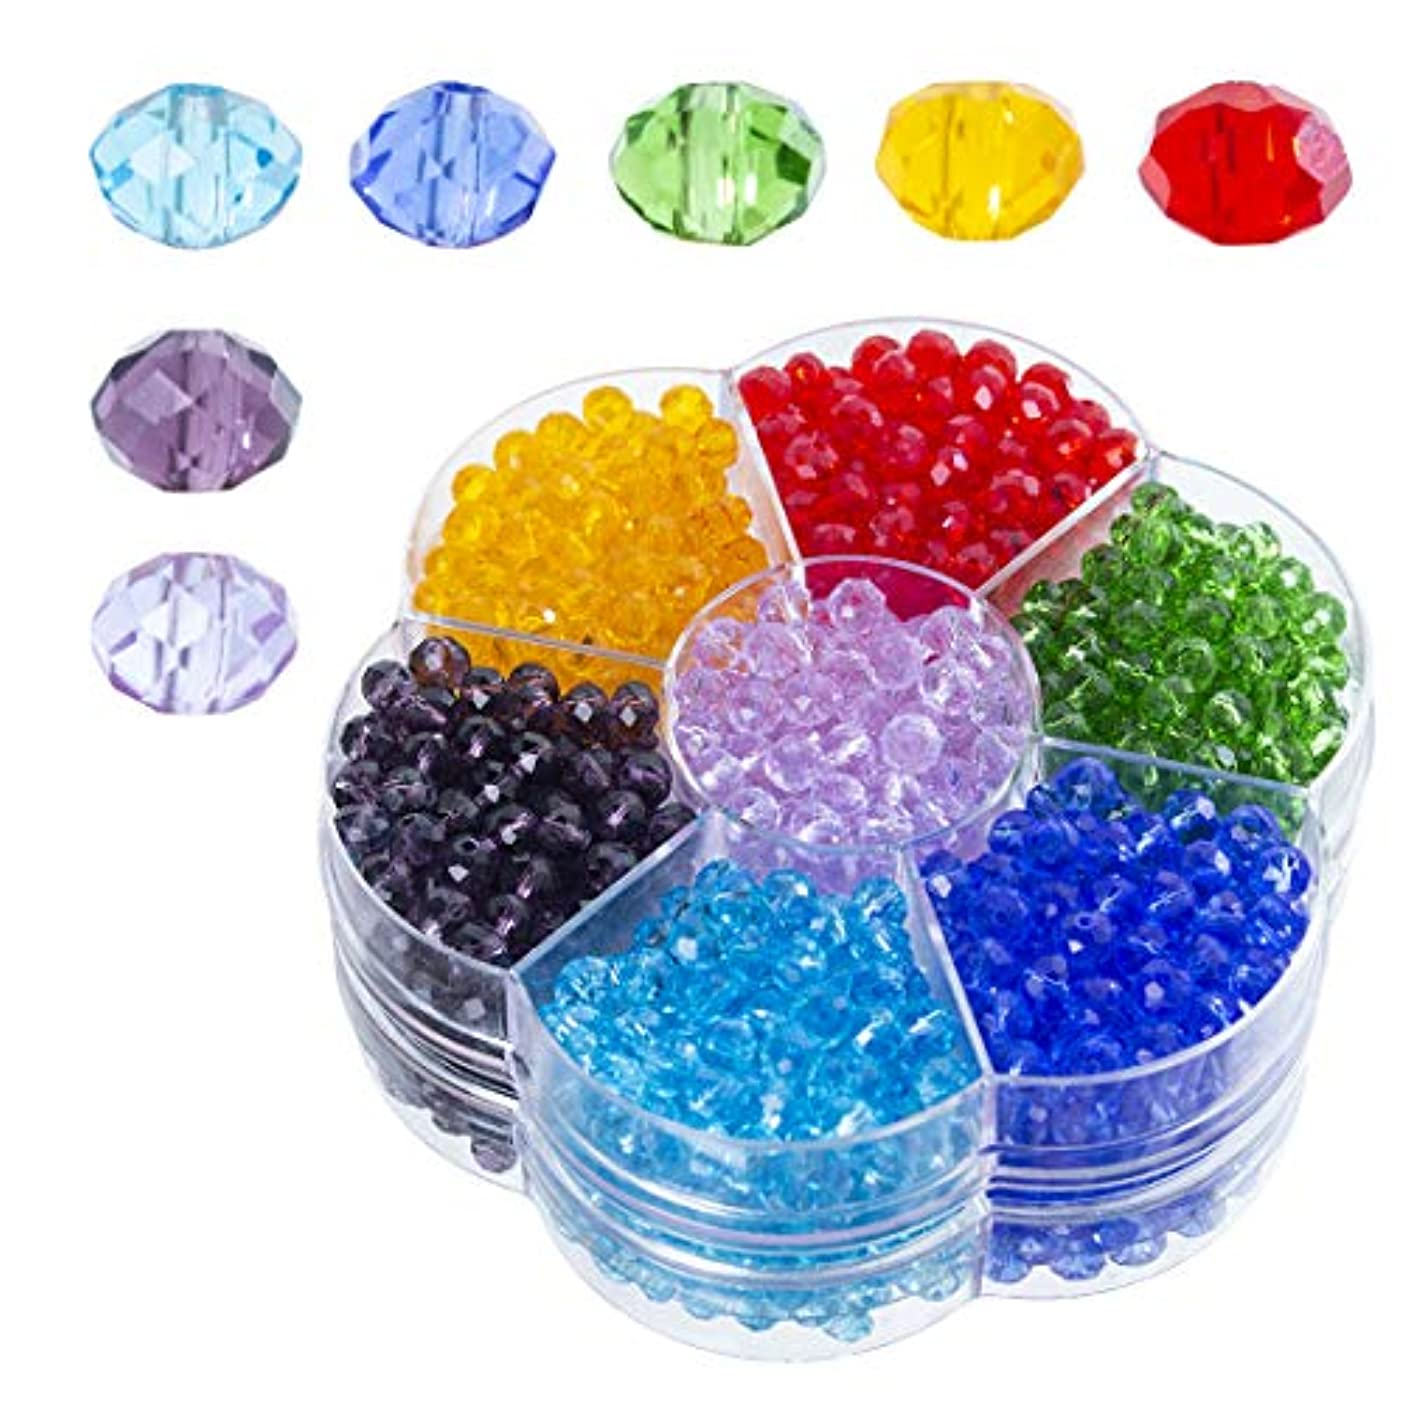 Wholesale 6mm Bicone Shaped Crystal Faceted Beads Jewelry Making Supply for DIY Beading Projects, Bracelets, Necklaces with Container Box (315PCS)